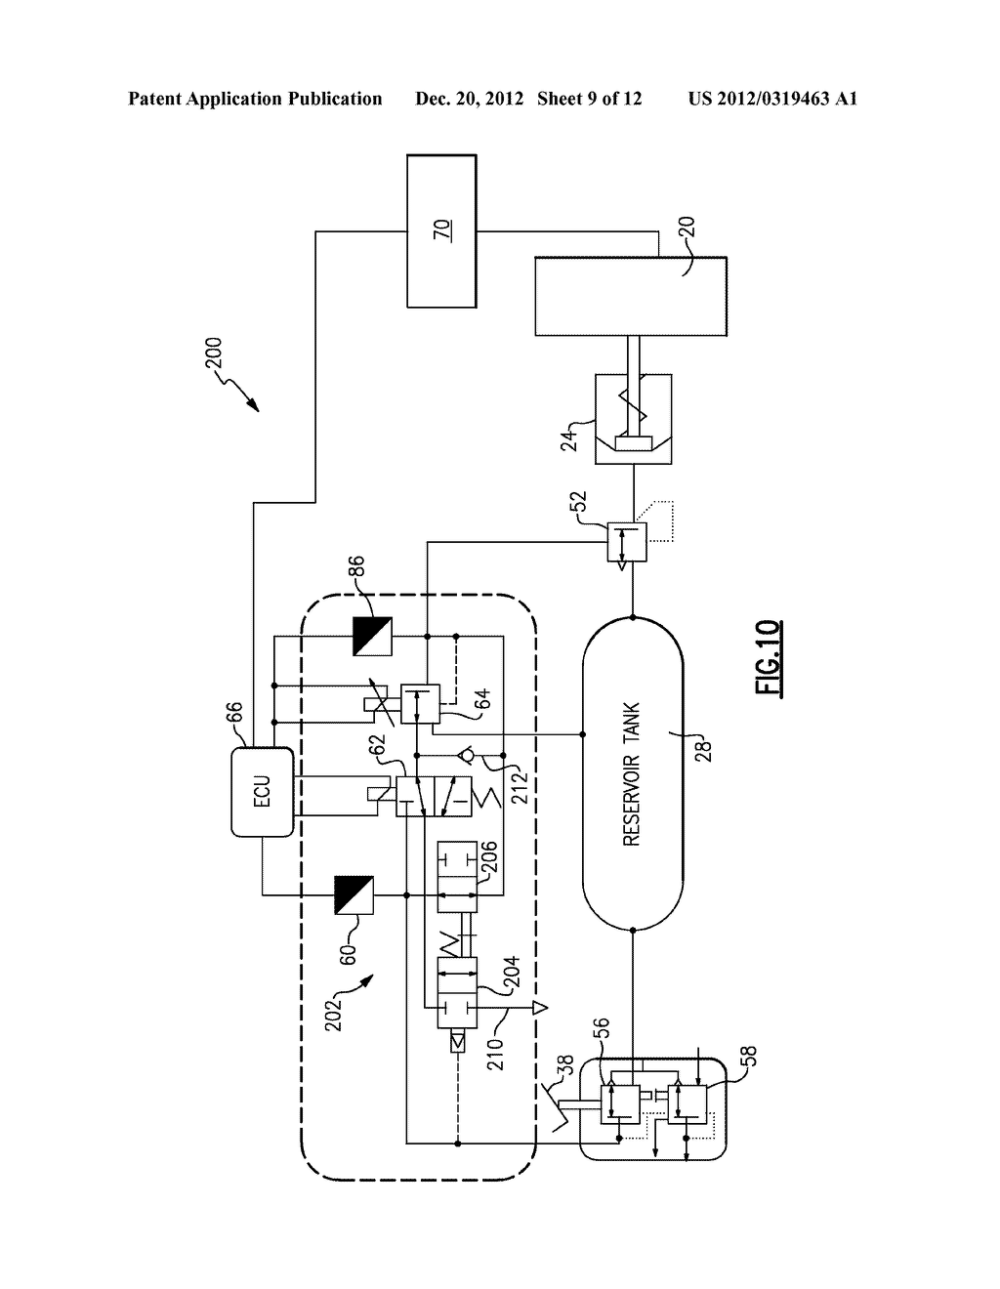 medium resolution of mechanical bypass valve for regenerative air brake module diagram schematic and image 10